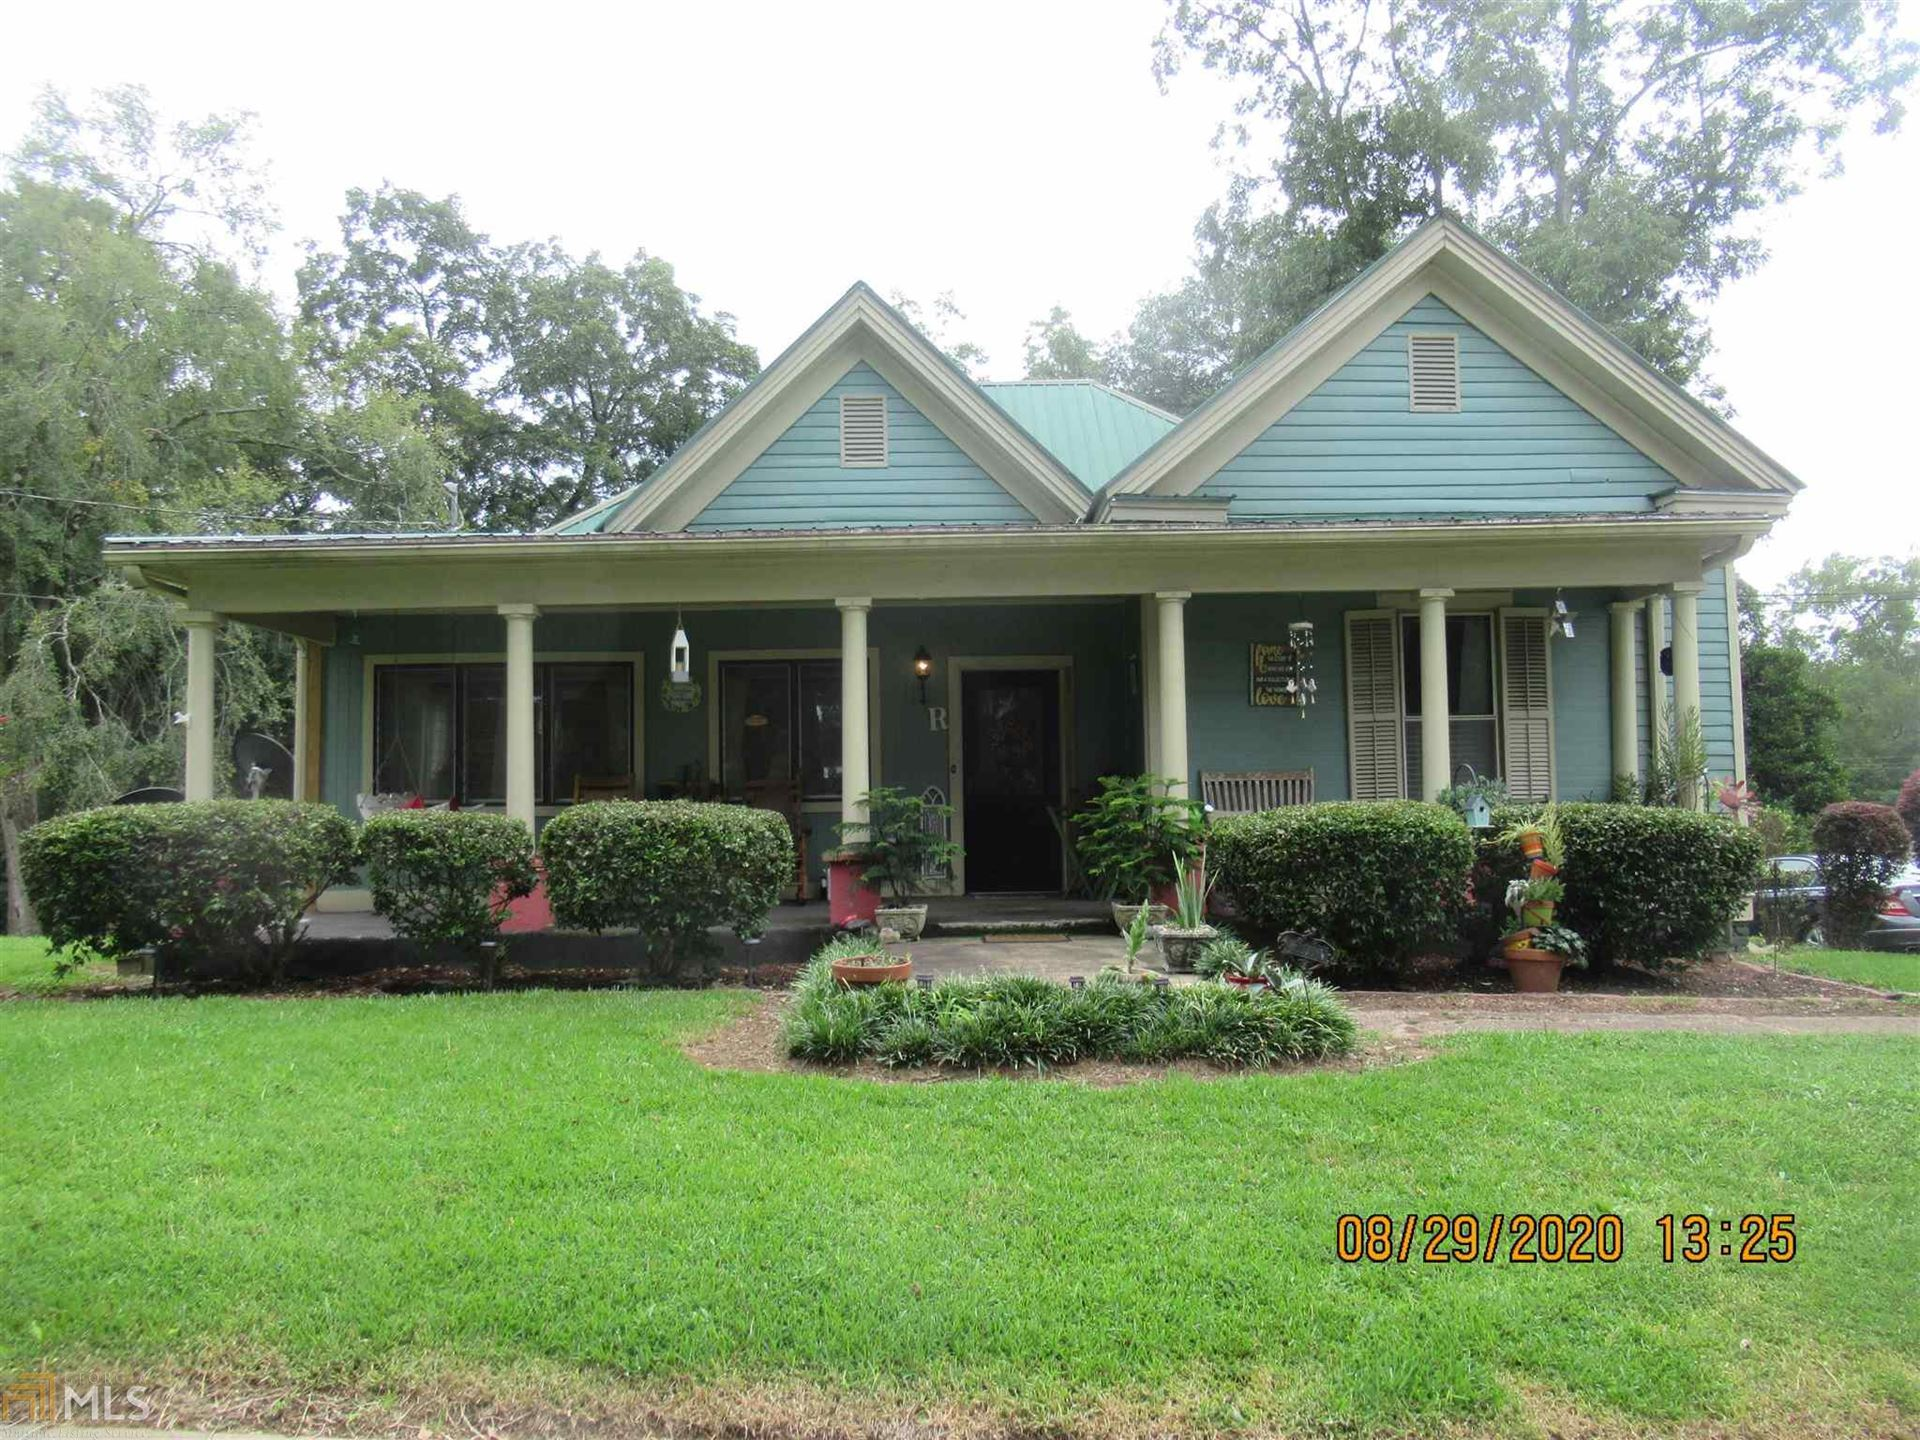 409 N 18Th St, Lanett, AL 36863 - #: 8850538